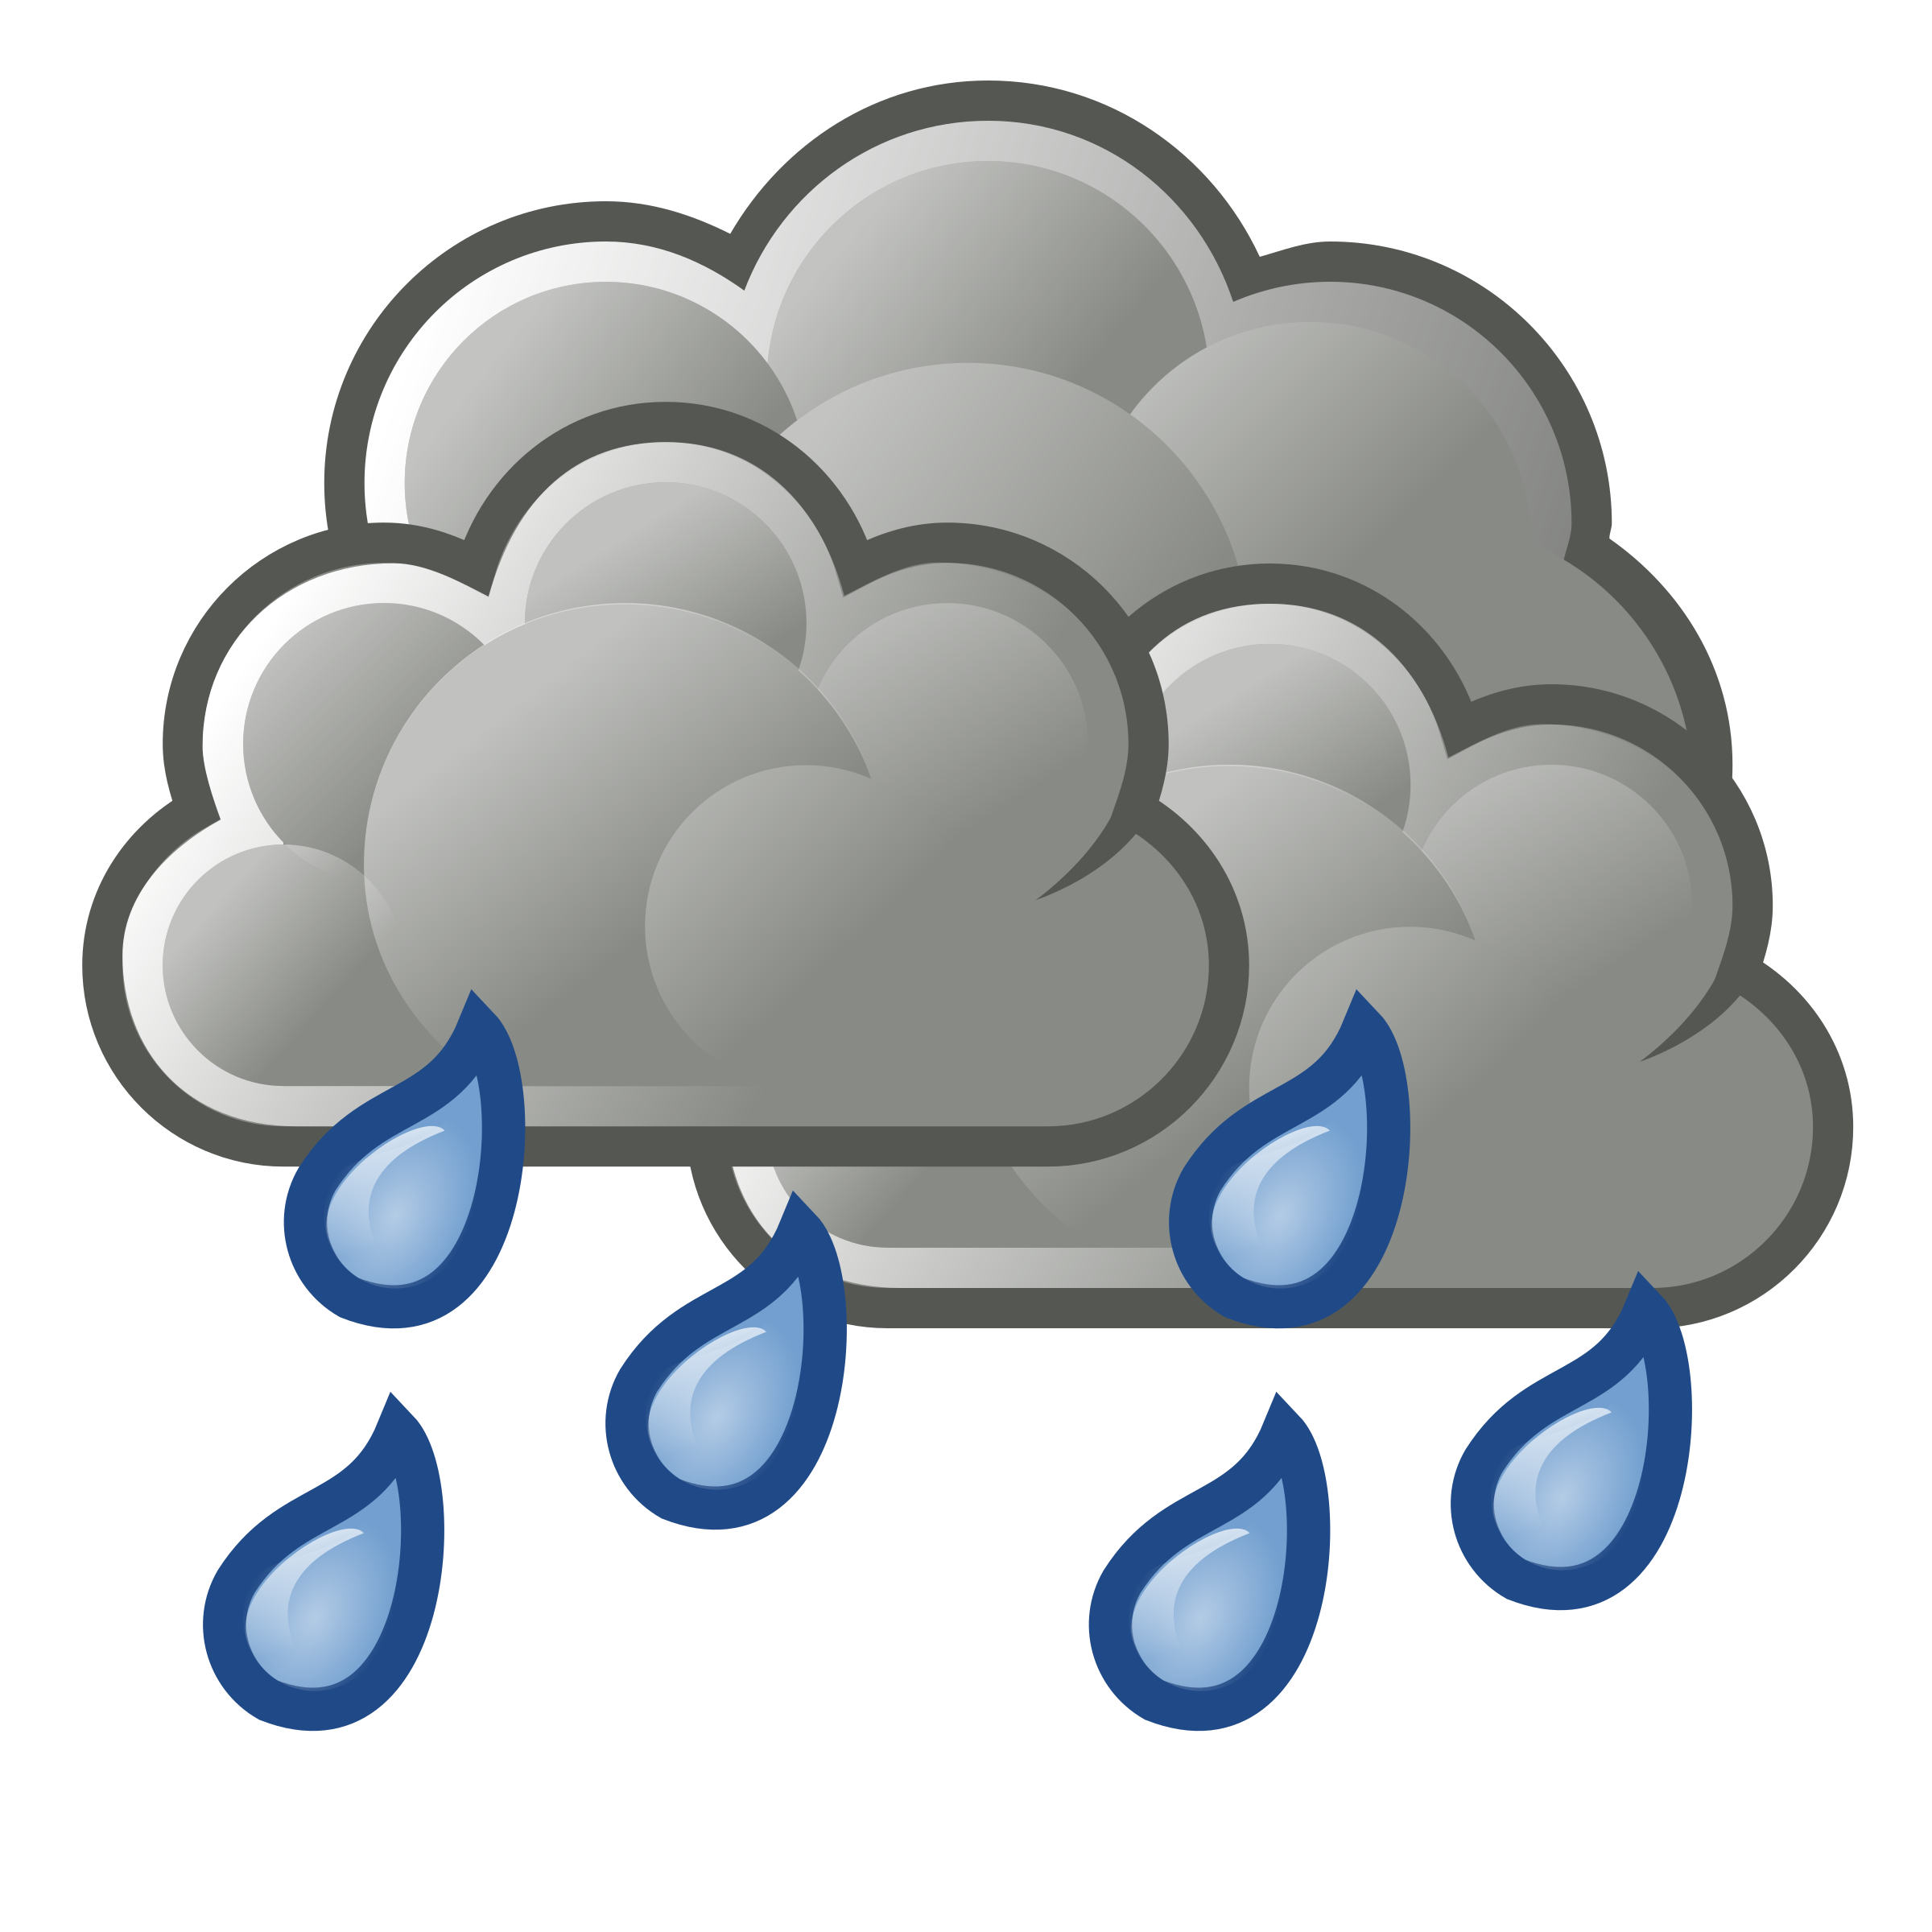 Tango weather showers scattered. Showering clipart rain shower